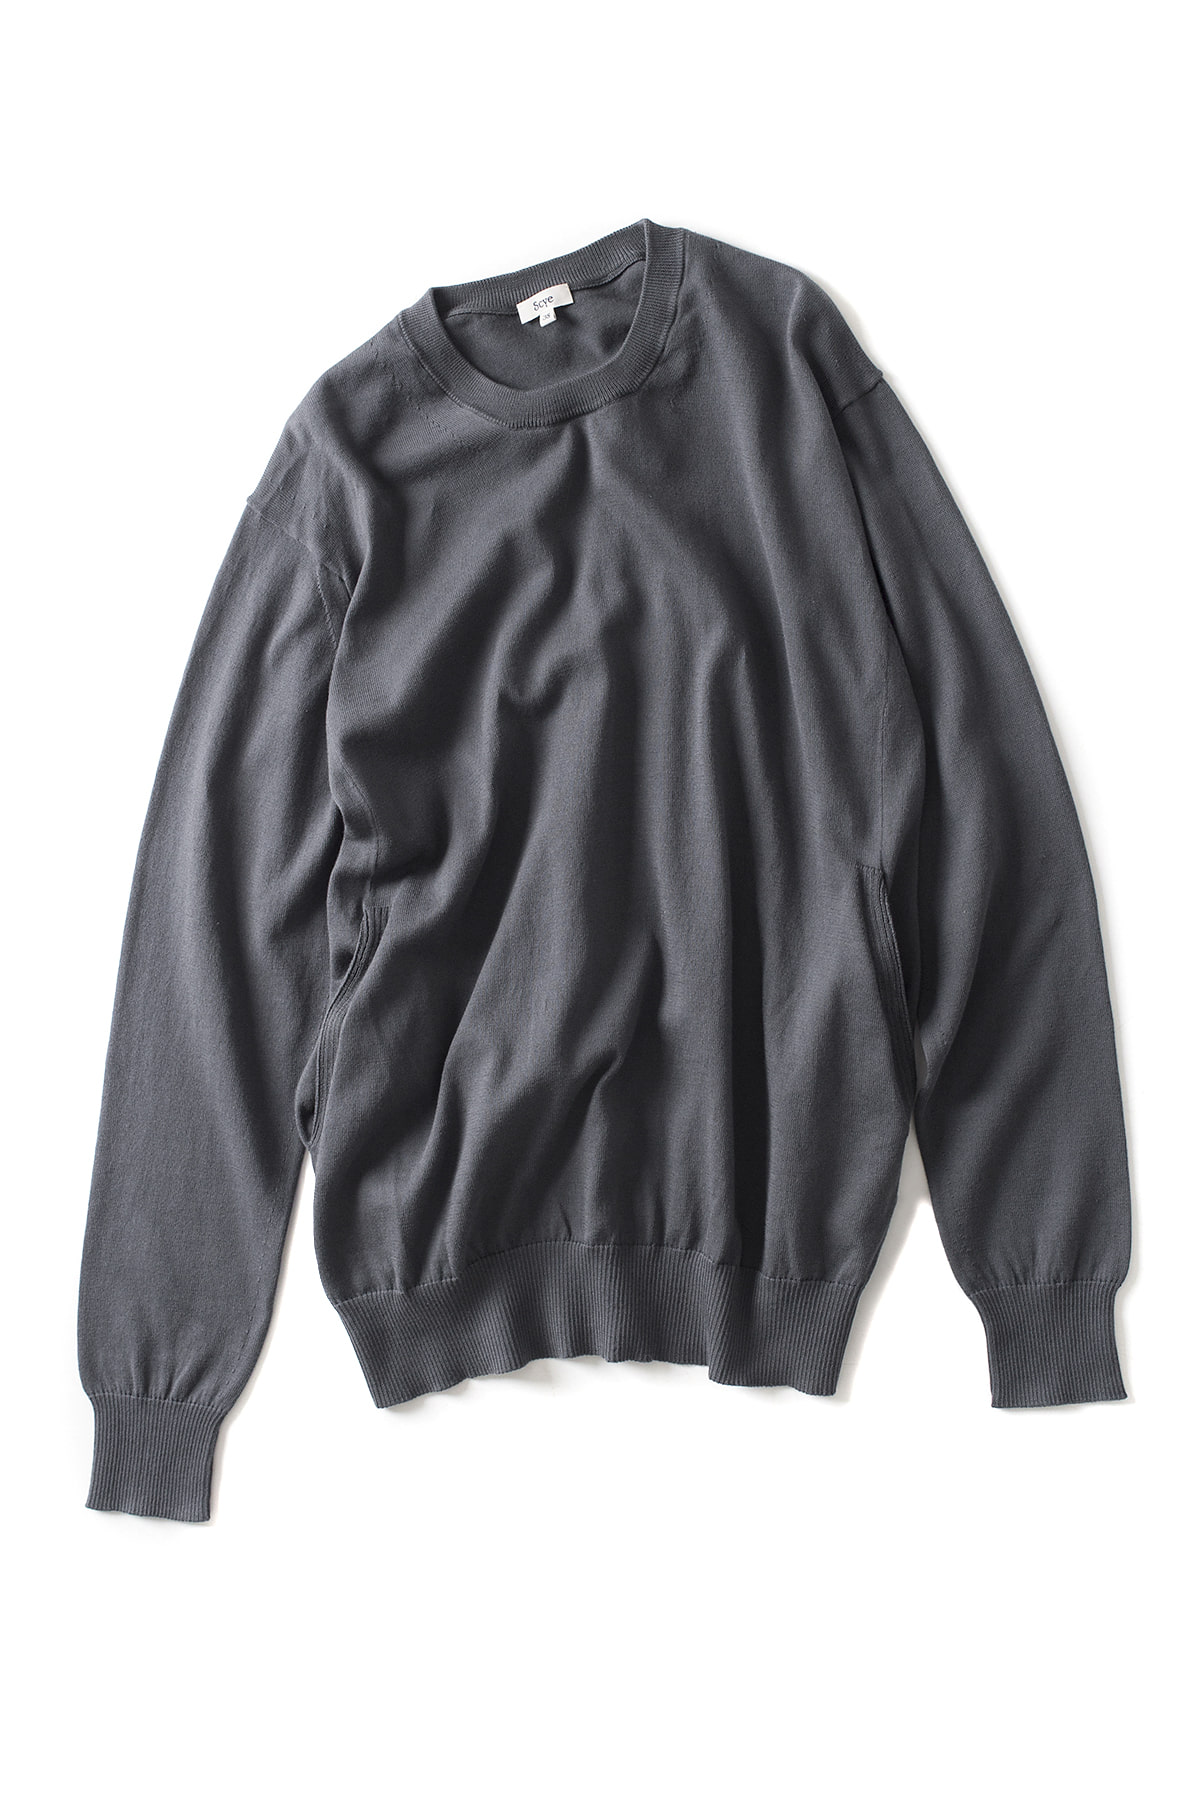 Scye : Cotton Crew Neck Sweater (D.Grey)